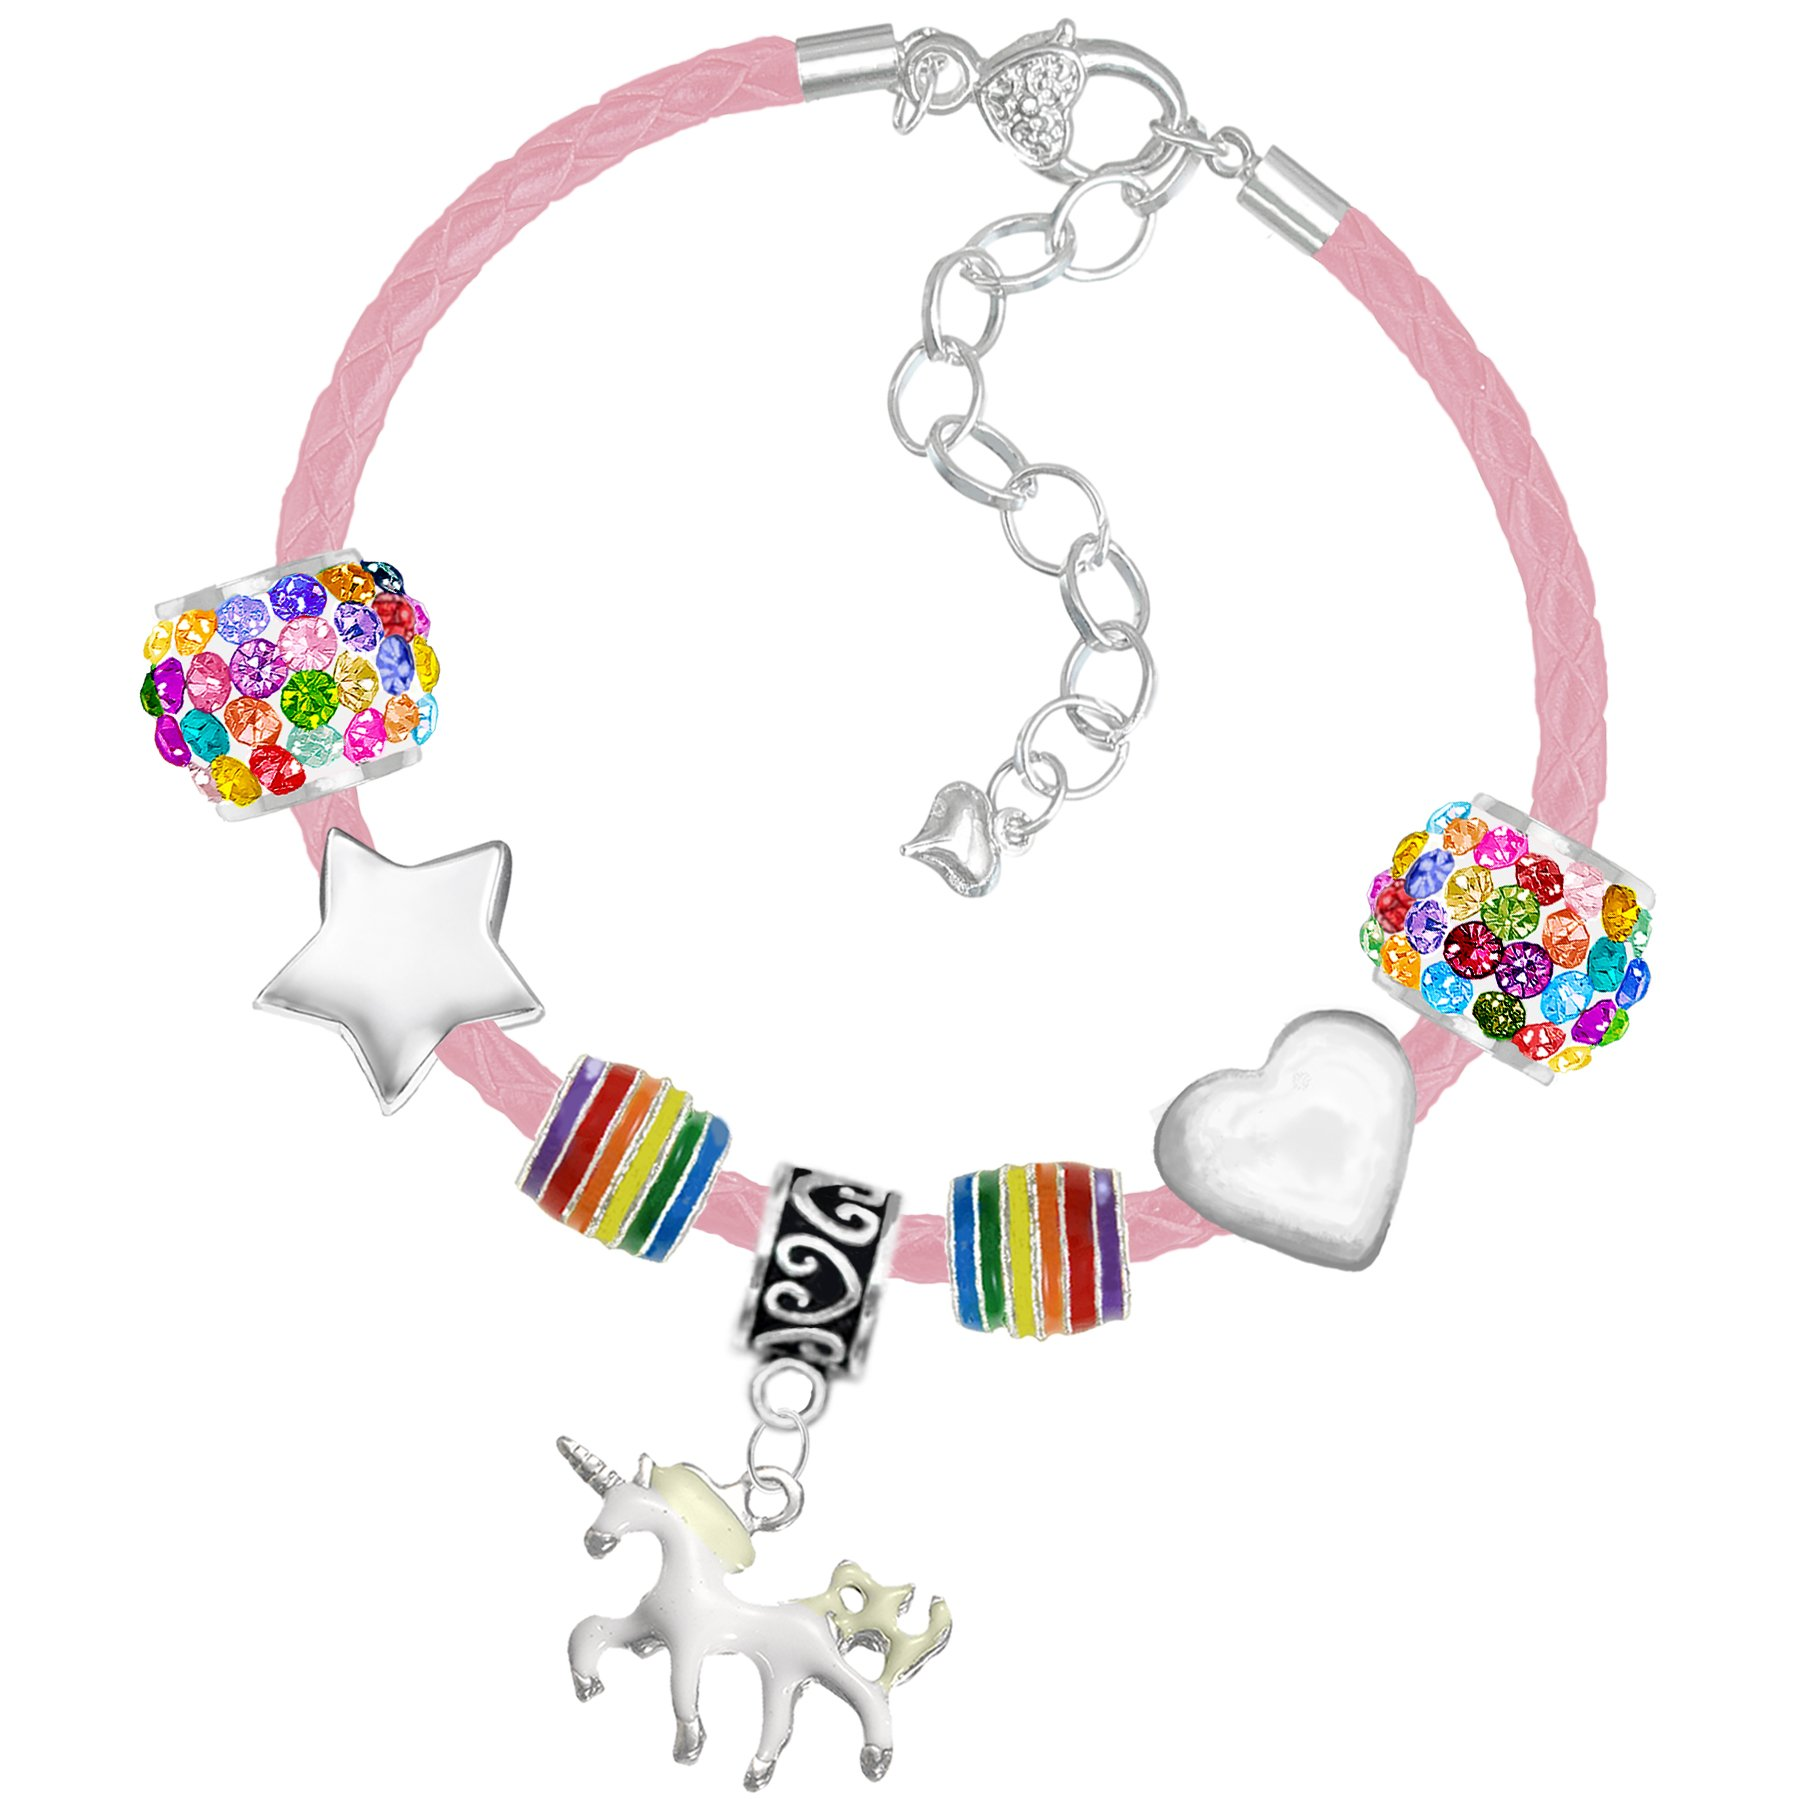 Girls Magical Unicorn Sparkly Charm Bracelet Set with Greeting Card and Gift Box Girls Jewelry (1 a Rainbow Colours Pink Leather)